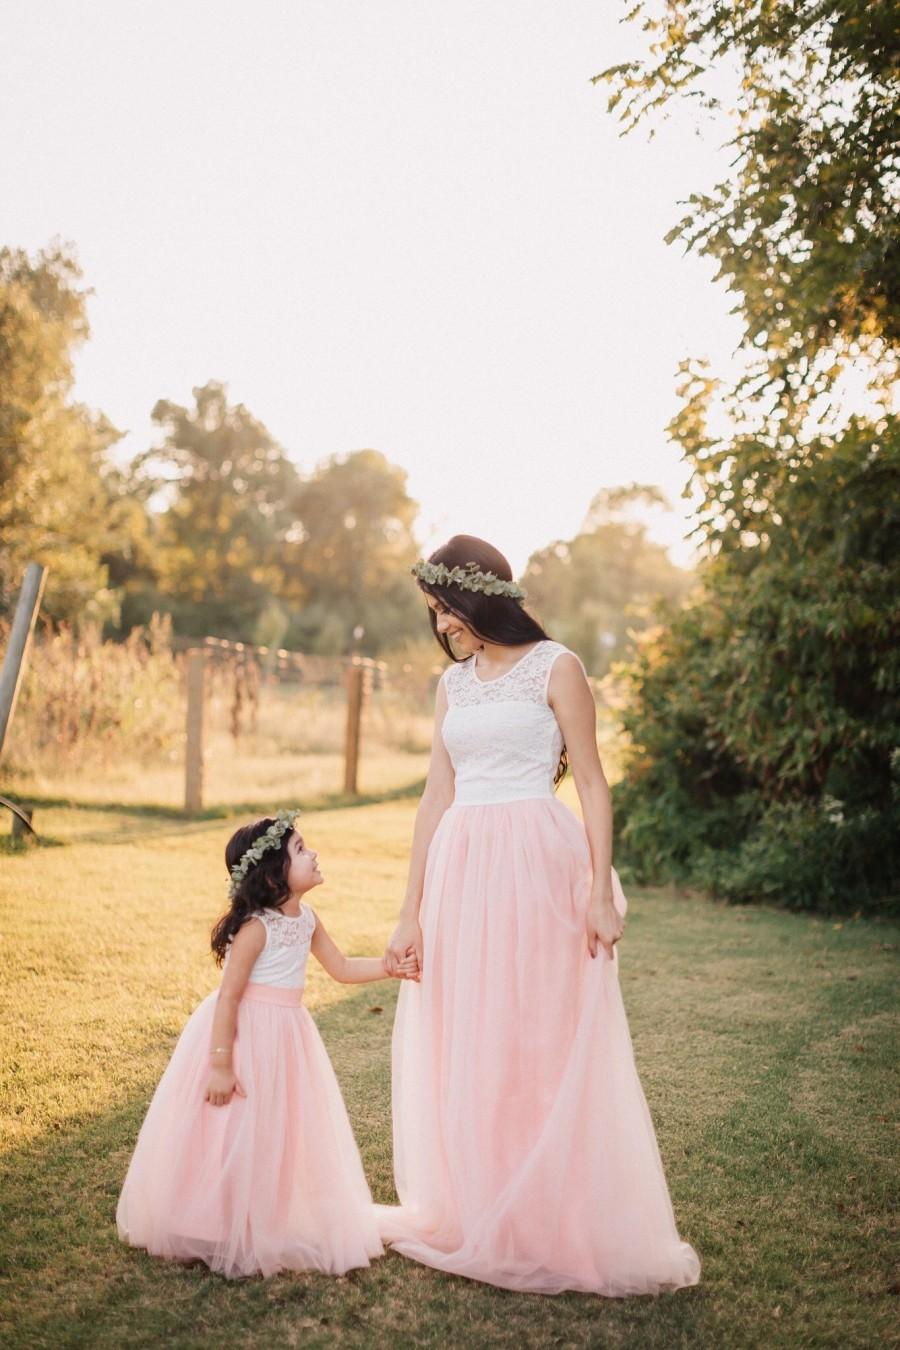 Свадьба - Blush pink Mother Daughter Matching Tutu Lace Dresses, Tulle Dress Long Floor Length, Blush Pink Lace Dress, Rustic Girl Dress